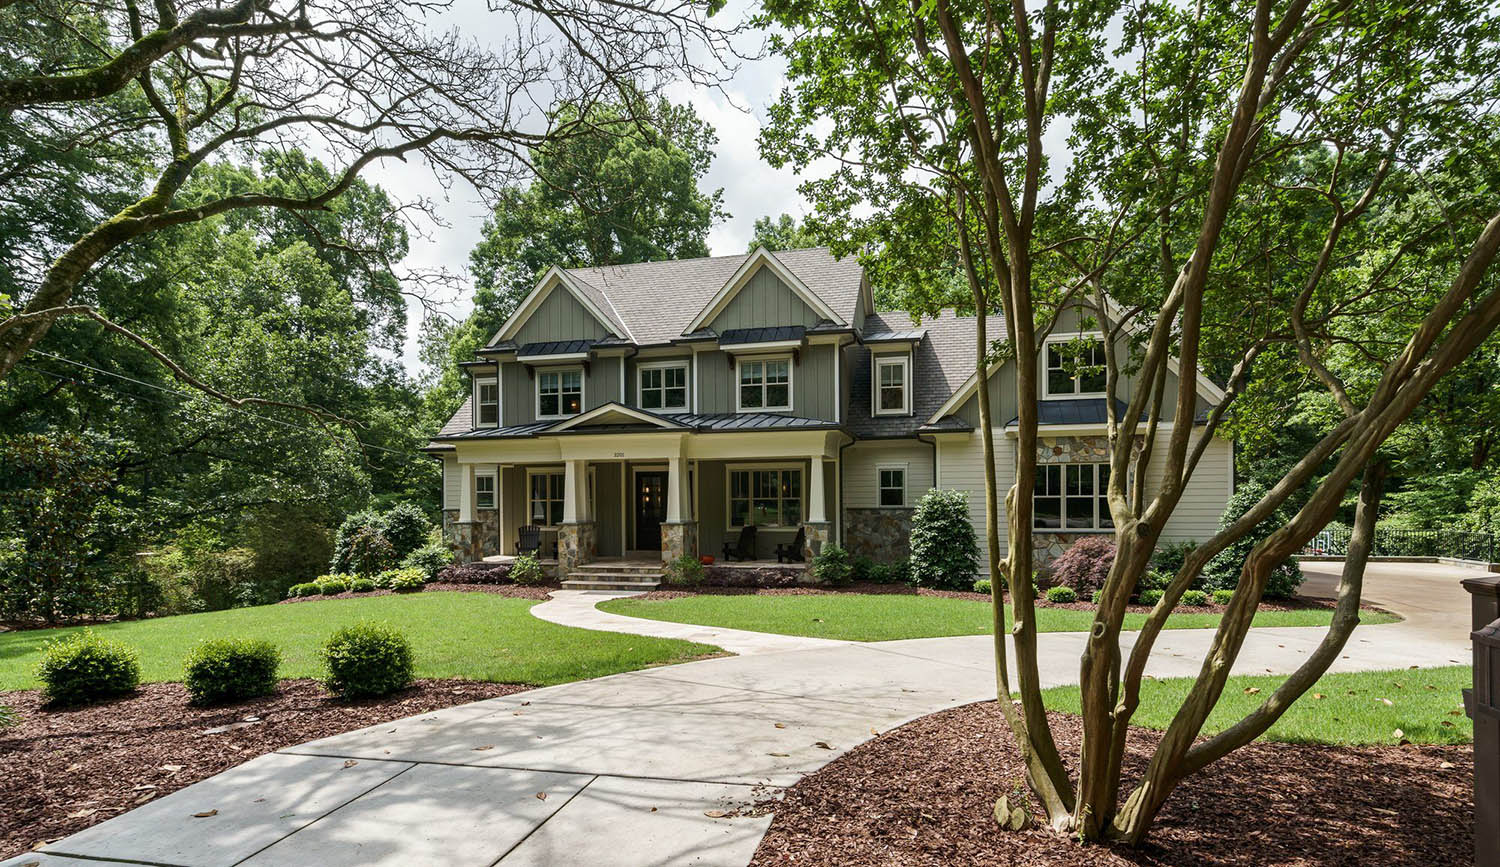 green colored house with white accents, black metal roof, natural stone veneer white trim